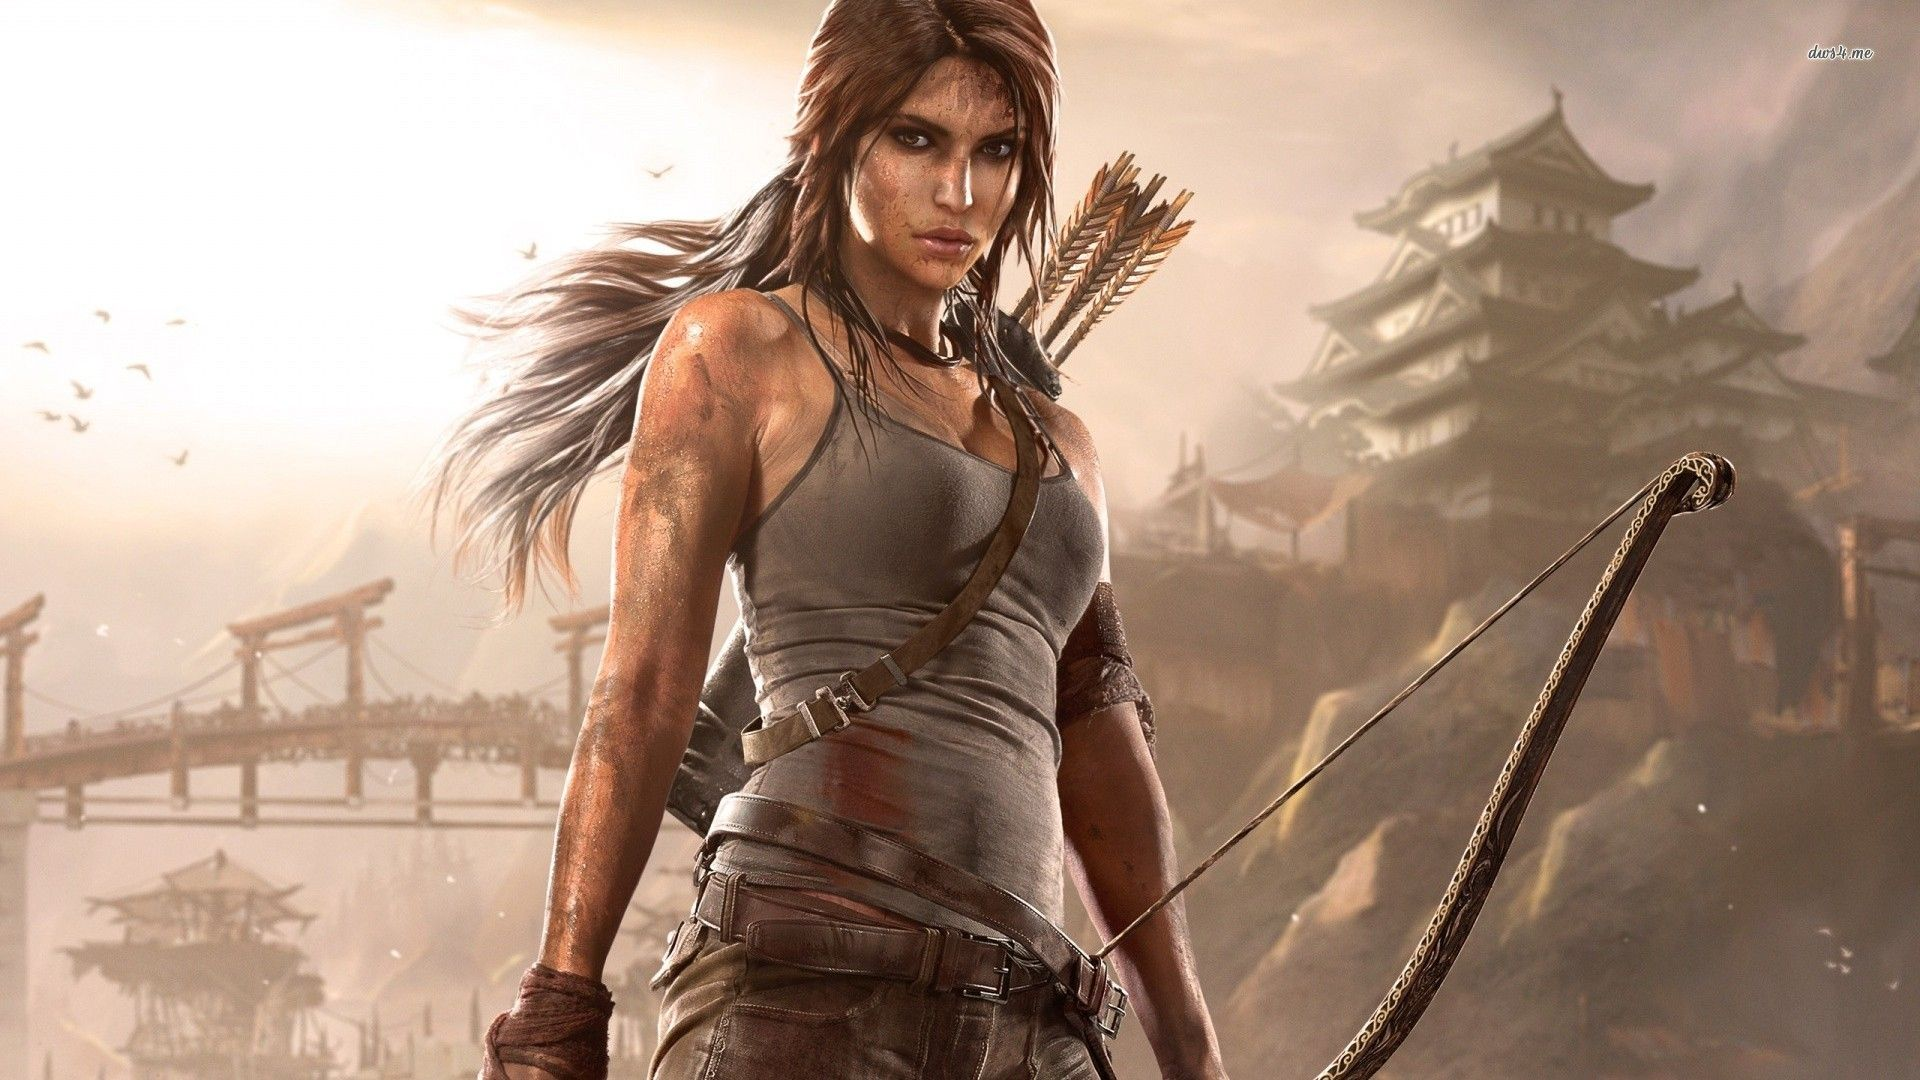 14407-lara-croft-tomb-raider-1920x1080-game-wallpaper.jpg ...